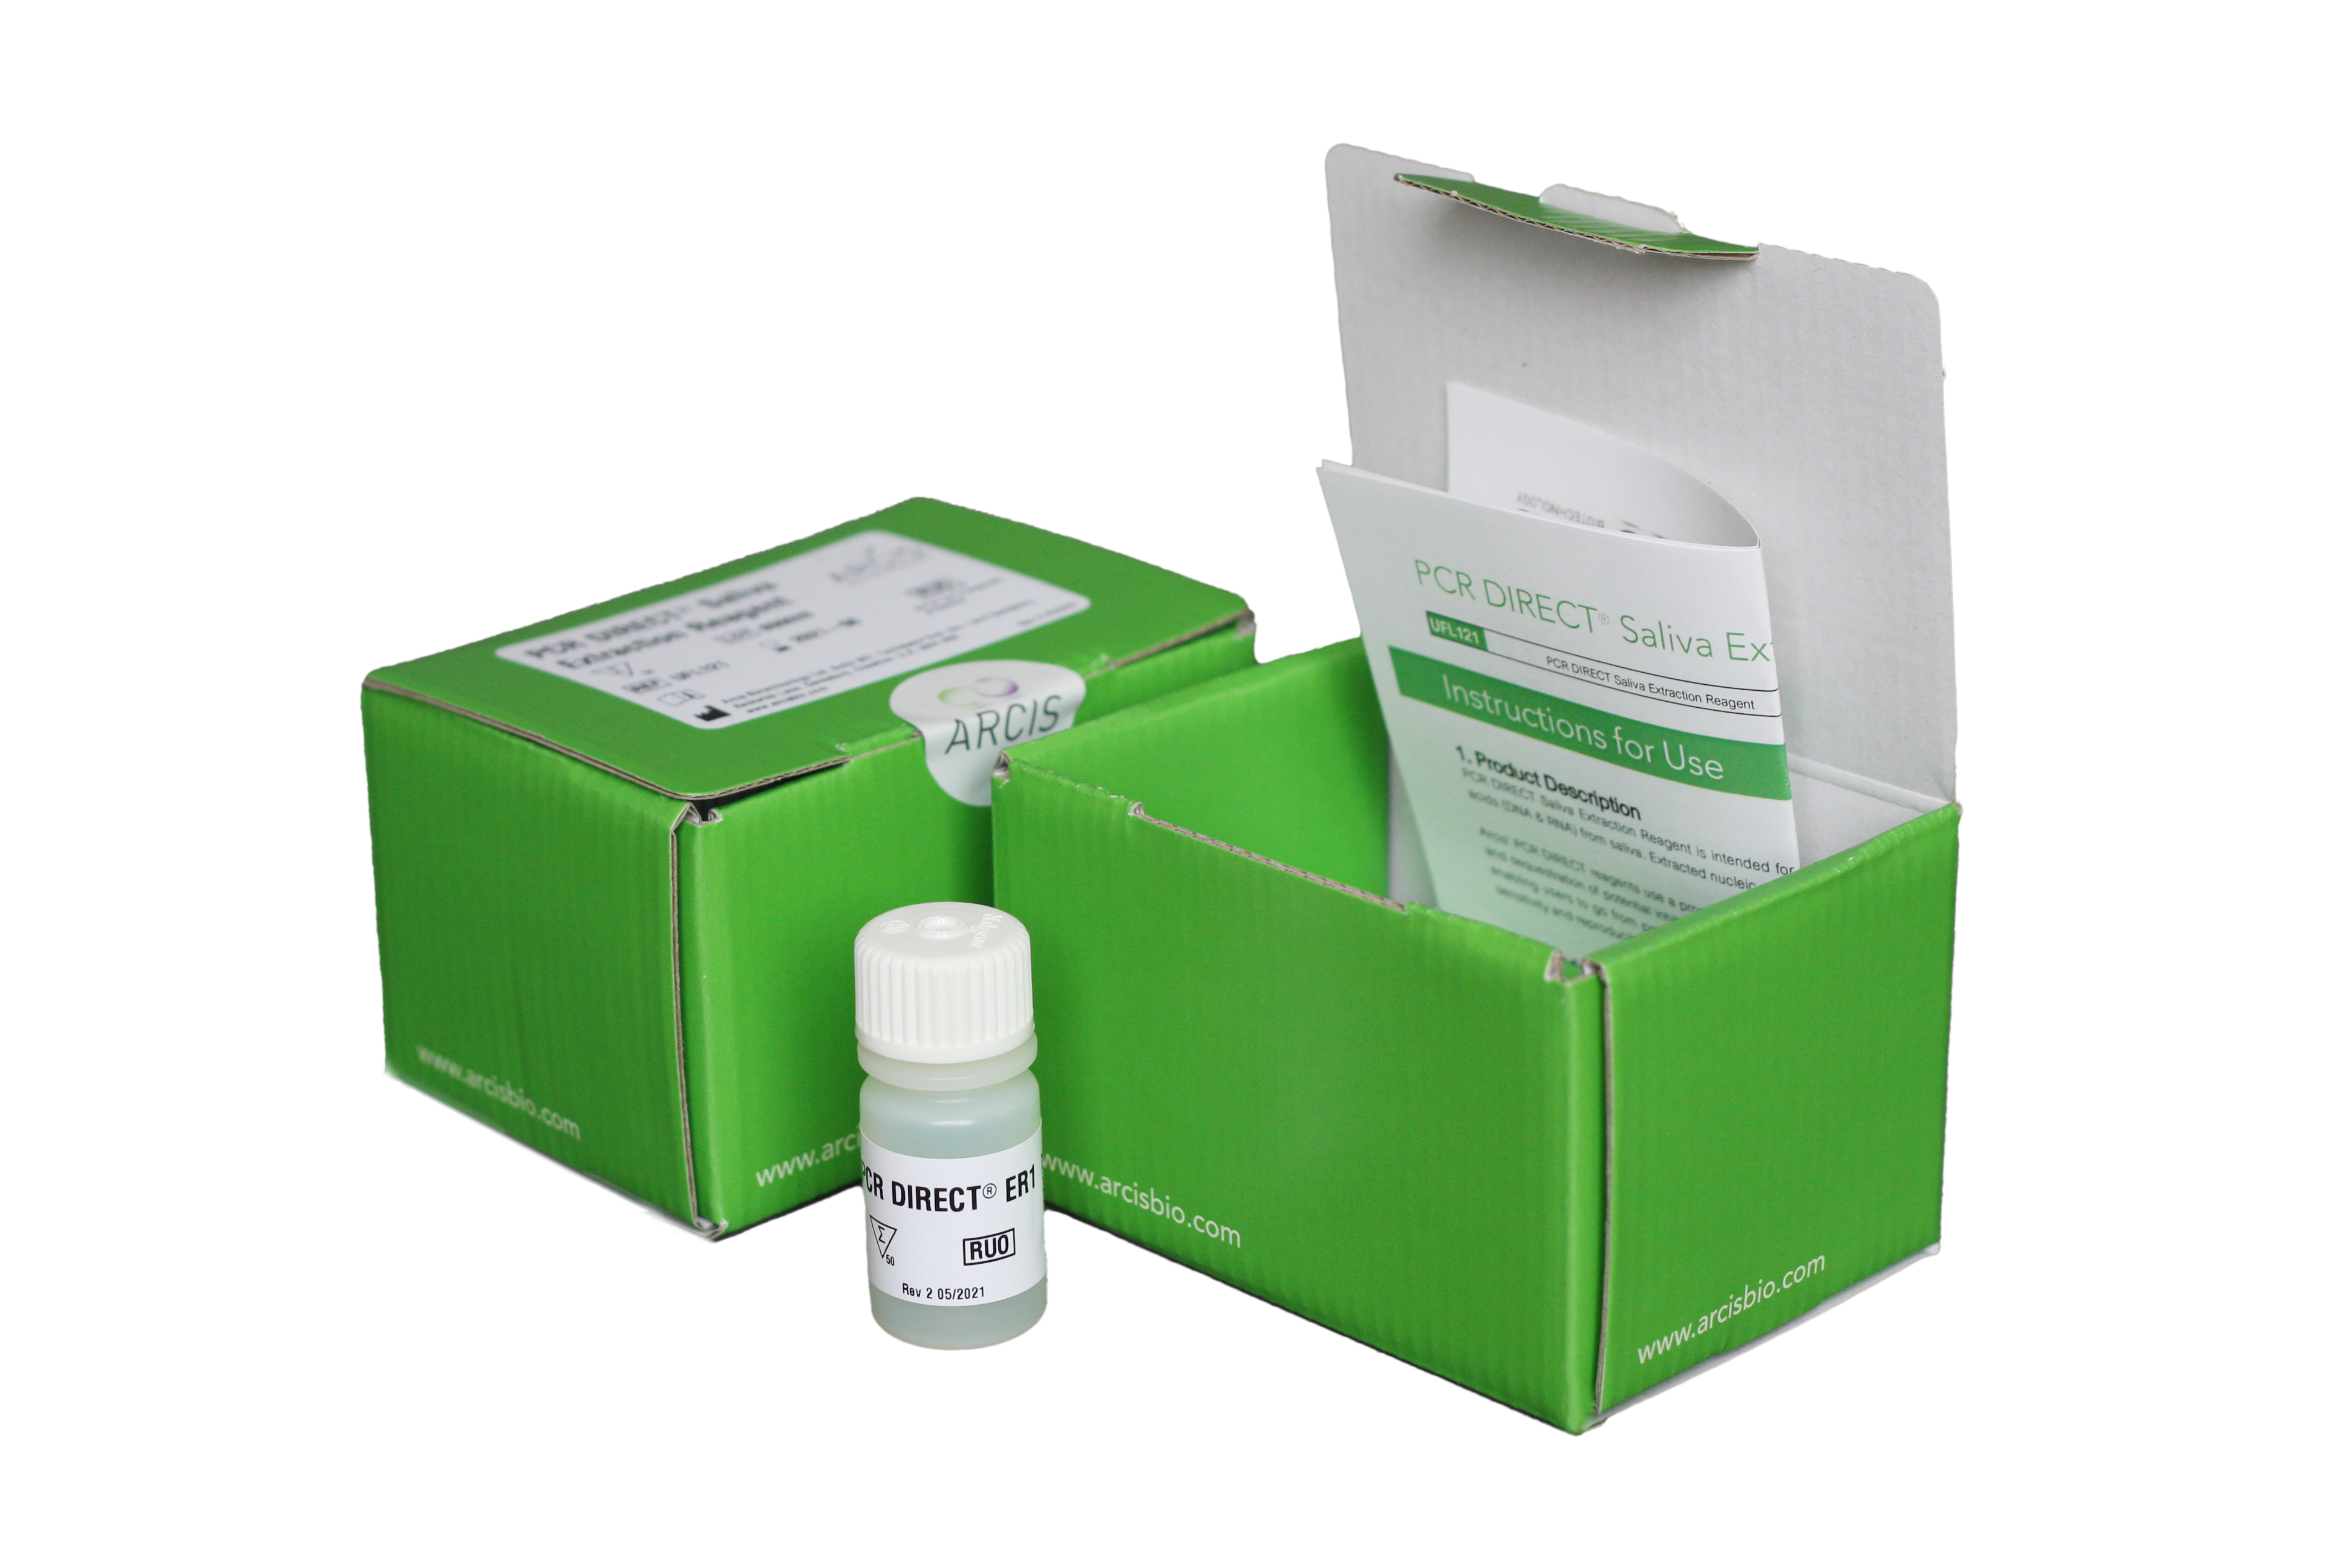 PCR DIRECT product packaging